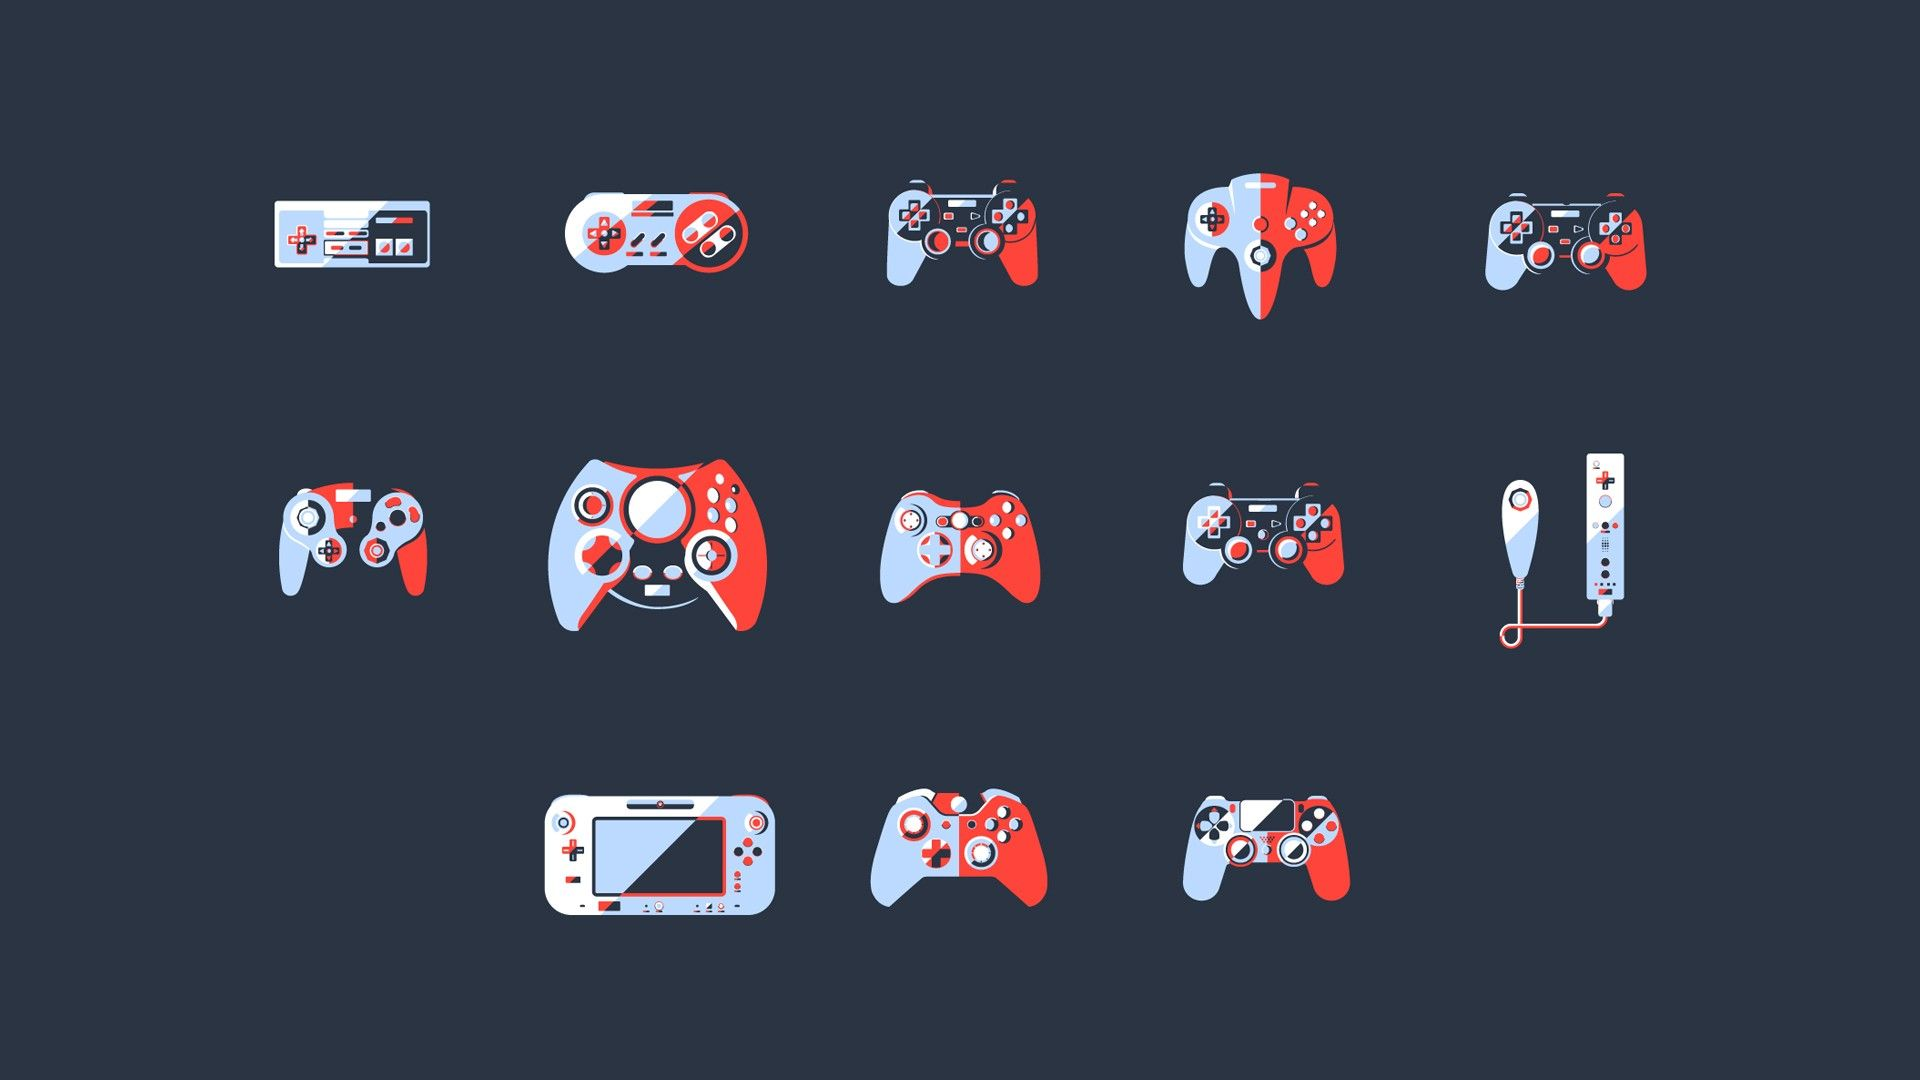 Video Games Controllers Simple Background Playstation Xbox Nintendo Entertainment Syst Retro Games Wallpaper Gaming Wallpapers Video Game Controller